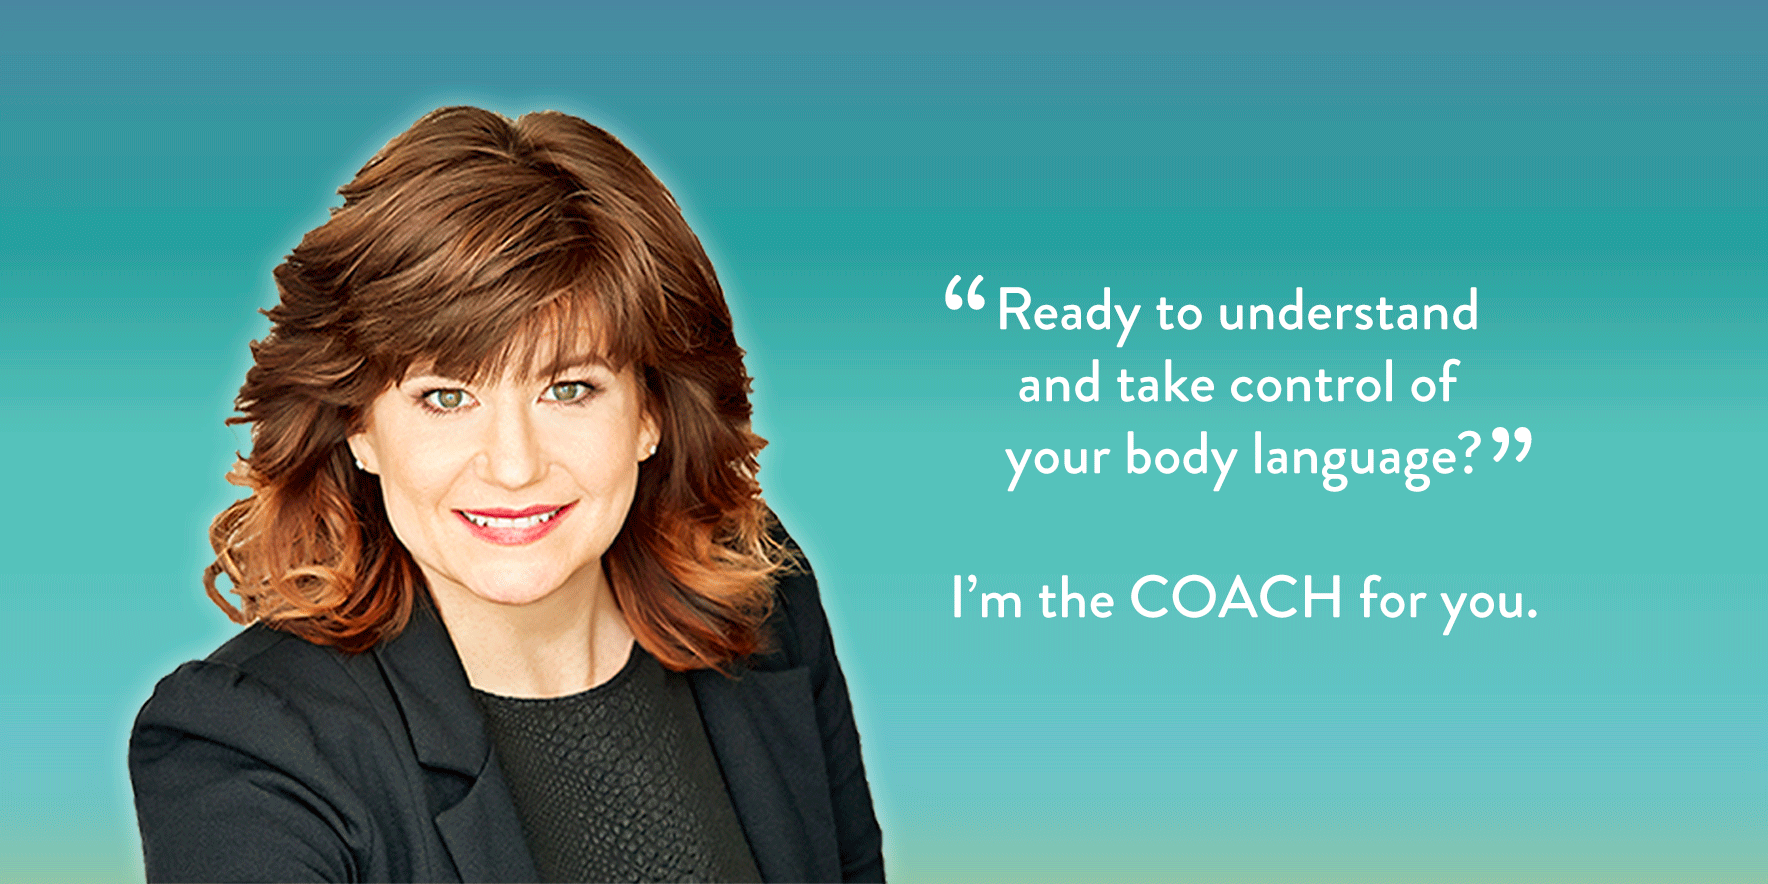 Take control of your body language.